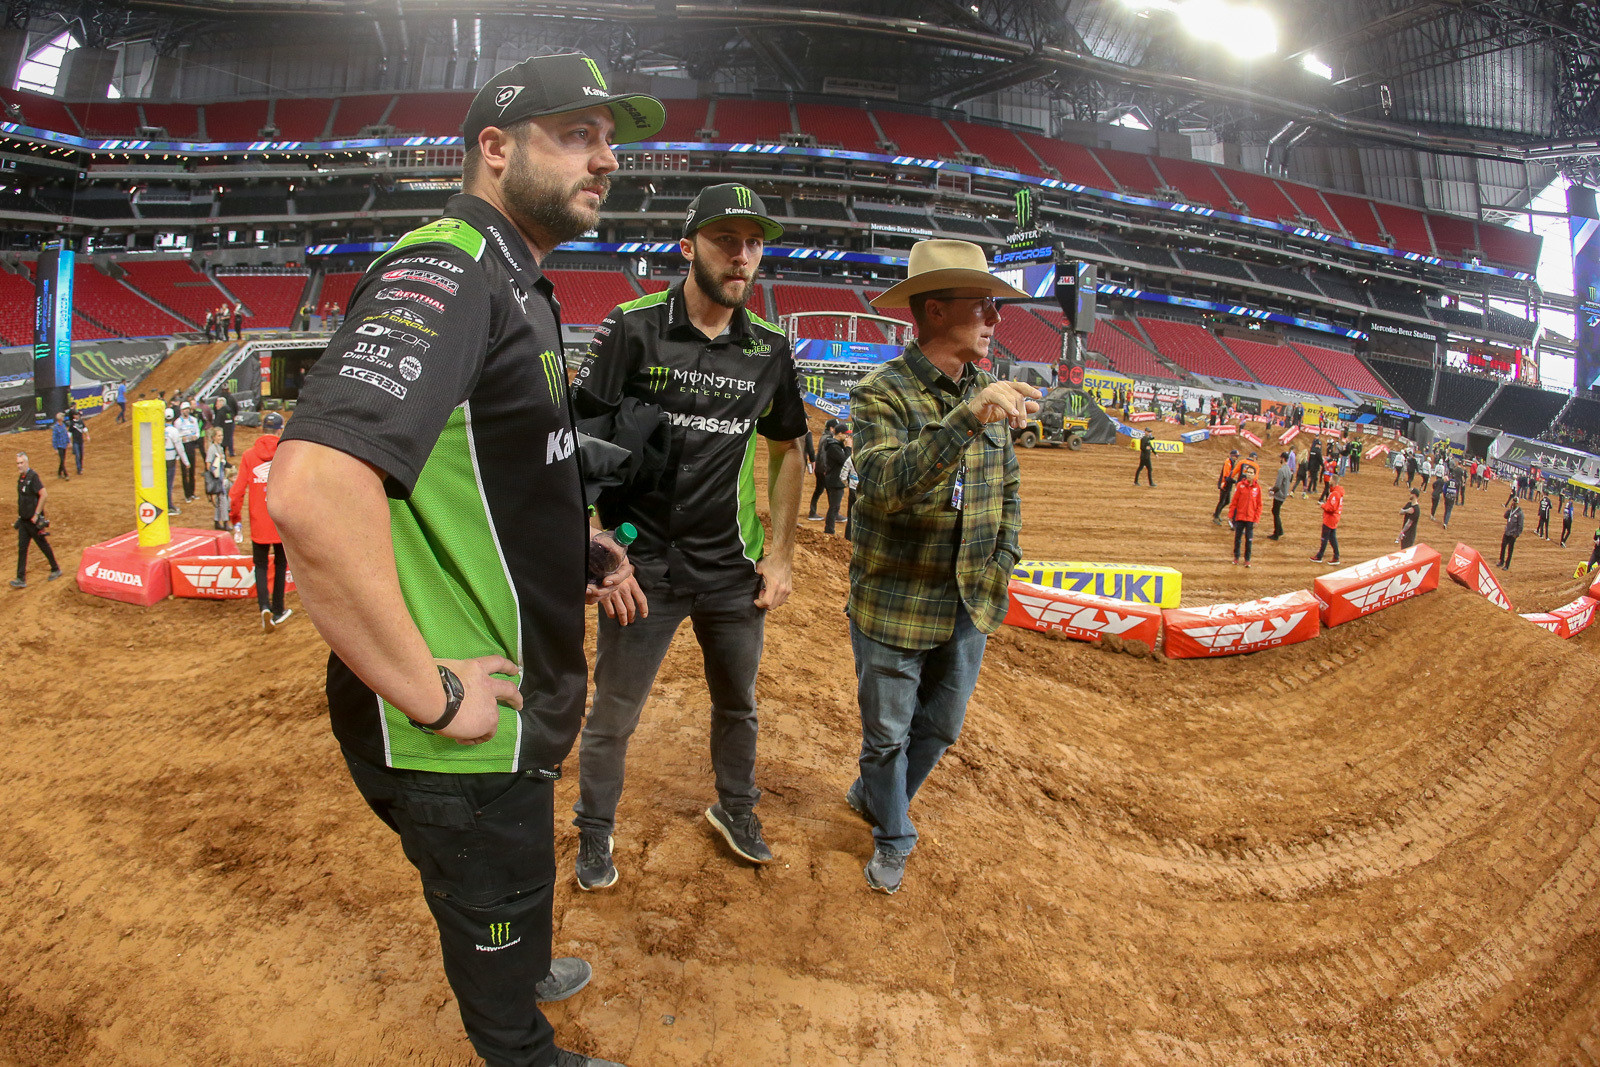 Eli Tomac brought the magic last weekend. Has he cracked the code on his setup for this year? We caught him, his mechanic (Brian Kranz), and his dad, John, checking out the terrain during track walk.